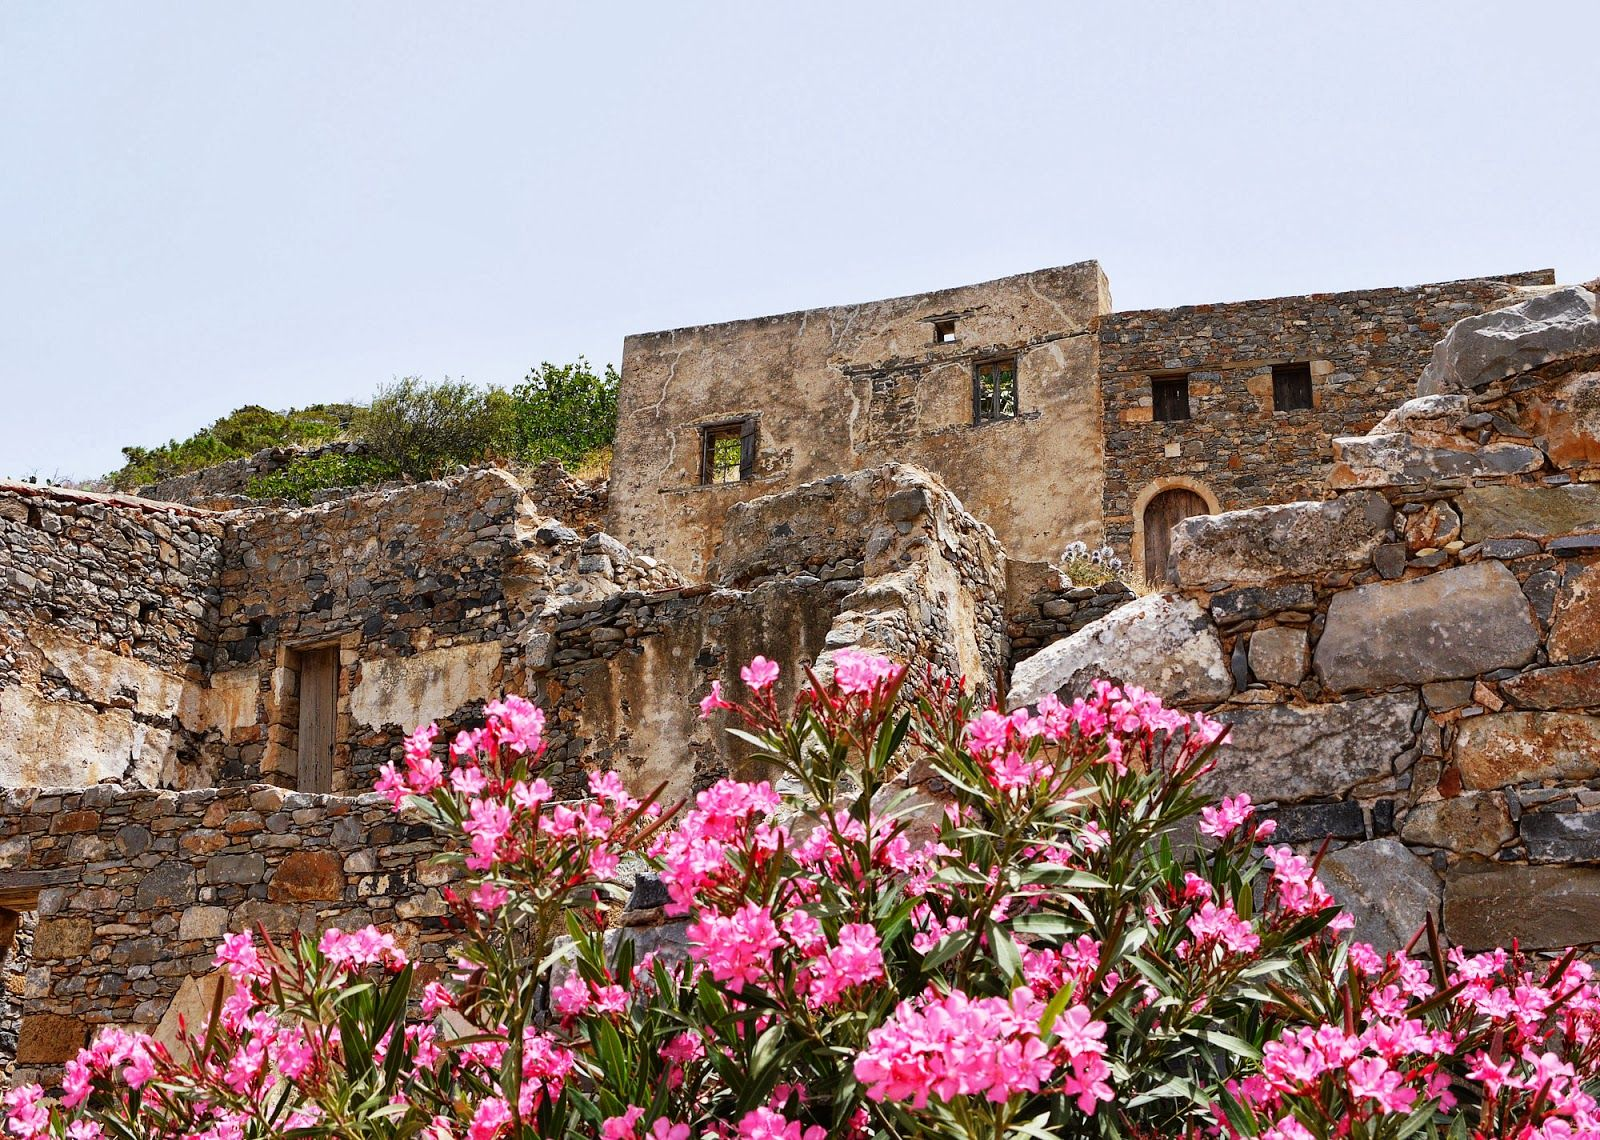 Blooming flowers on the island of Spinalonga